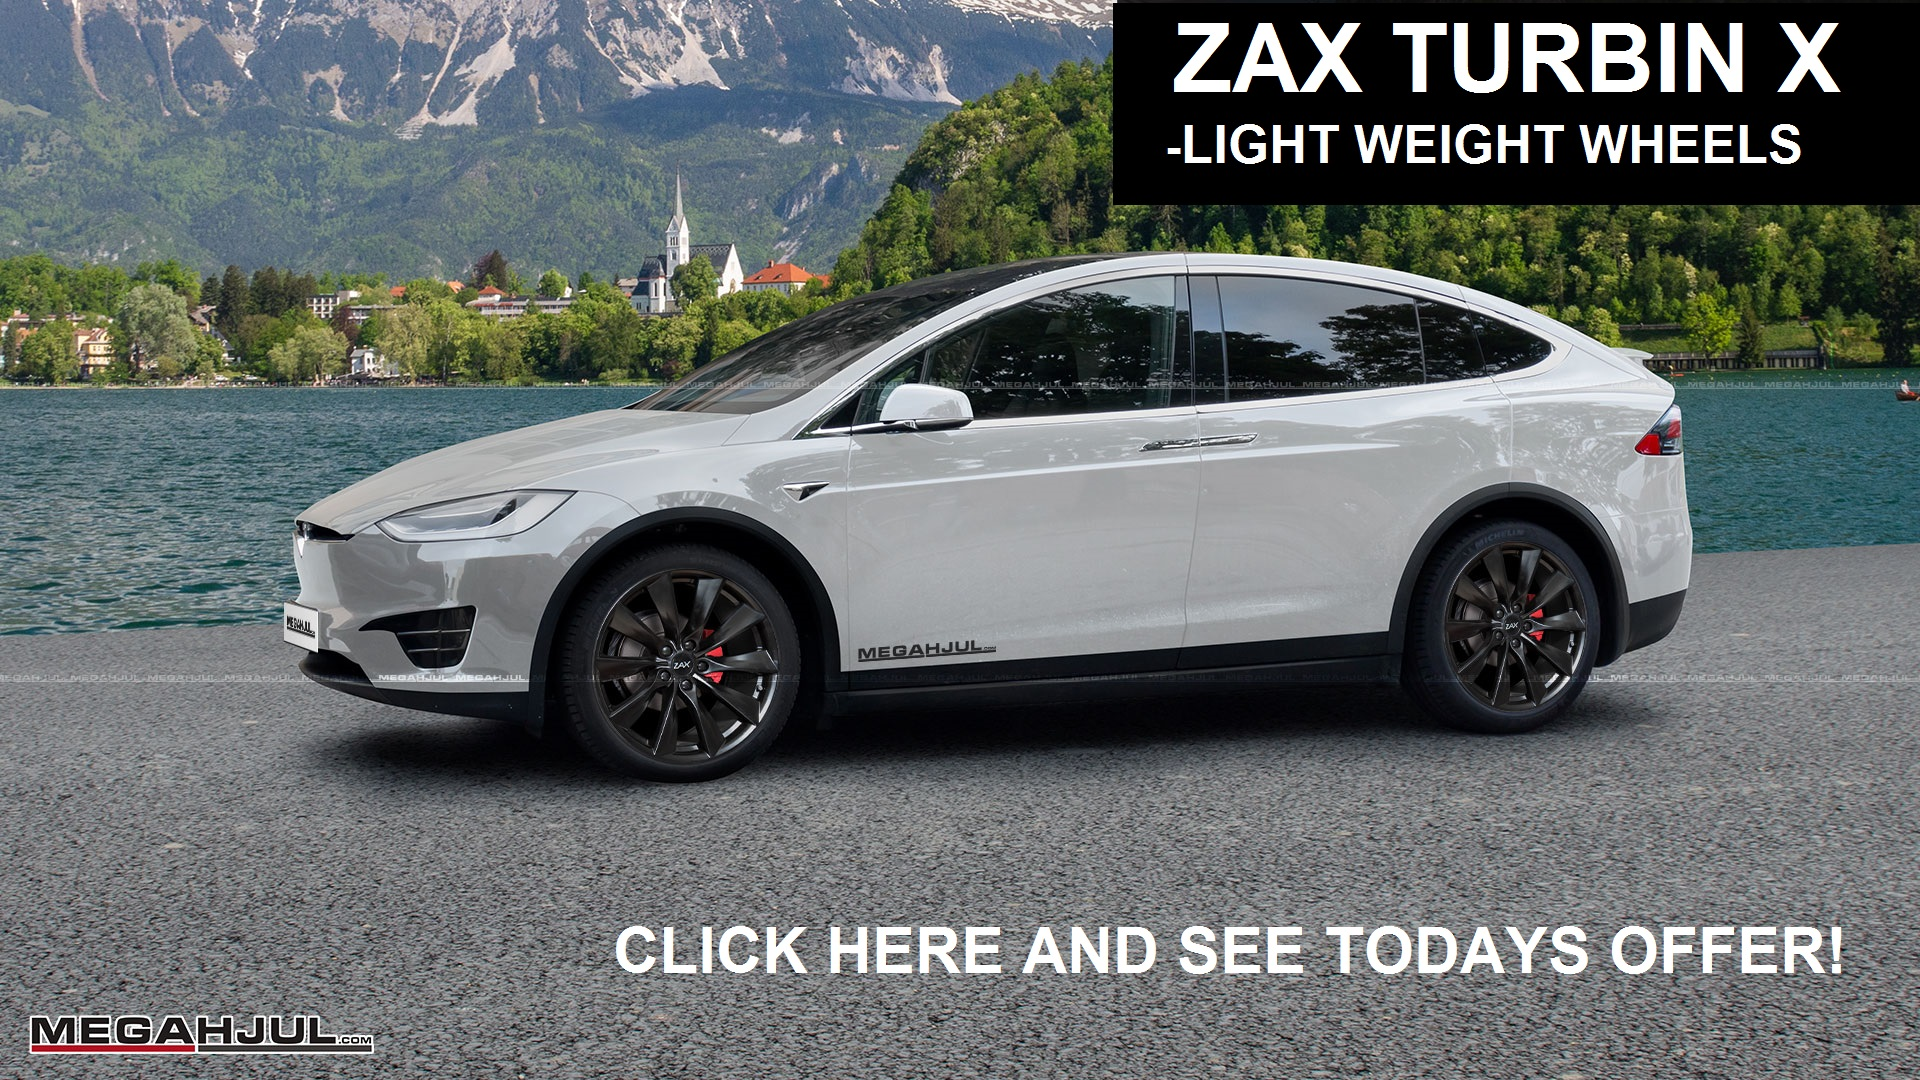 Tesla-model-x-wheels-black-felger-sorte-zax-turbin-x